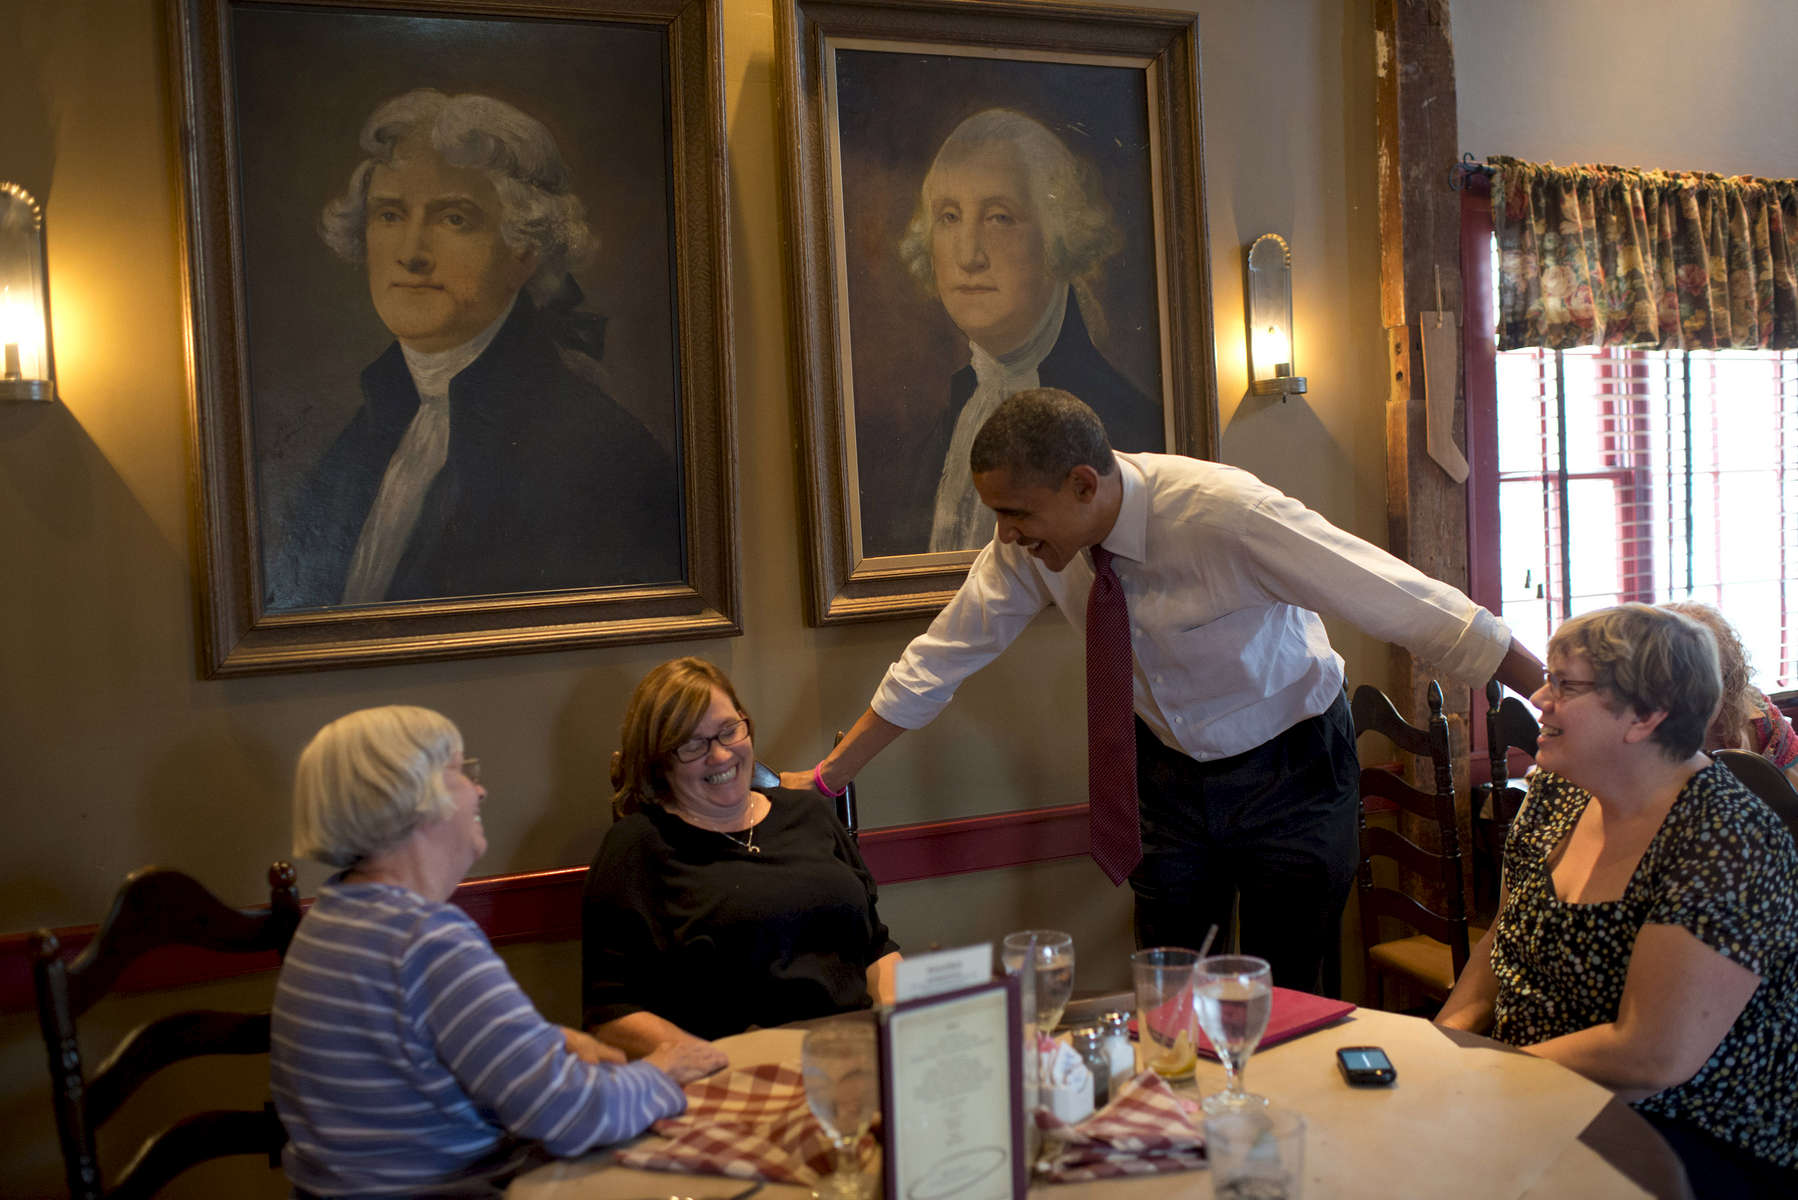 October 27, 2012 - Merrimack, NH:  President Barack Obama chats with patrons at the Common Man Pub in Merrimack, NH.  (Scout Tufankjian for Obama for America/Polaris)